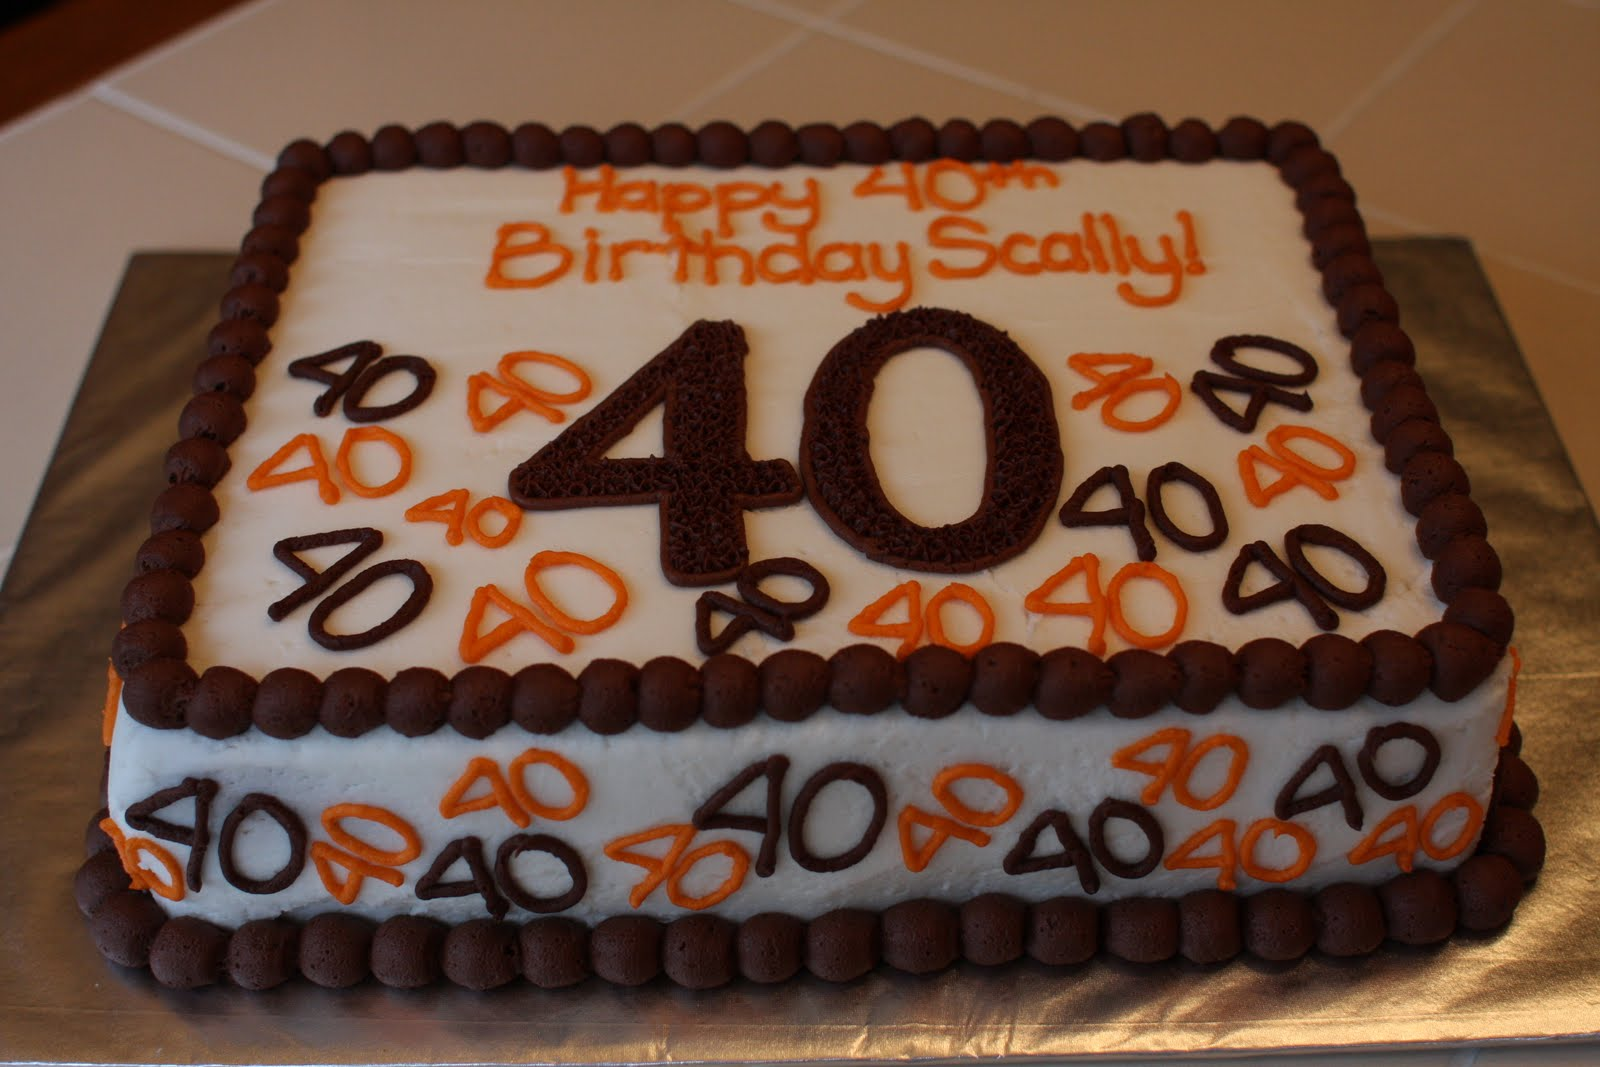 40th birthday sheet cake ; a90028f8419be0ca50baef25711630bc